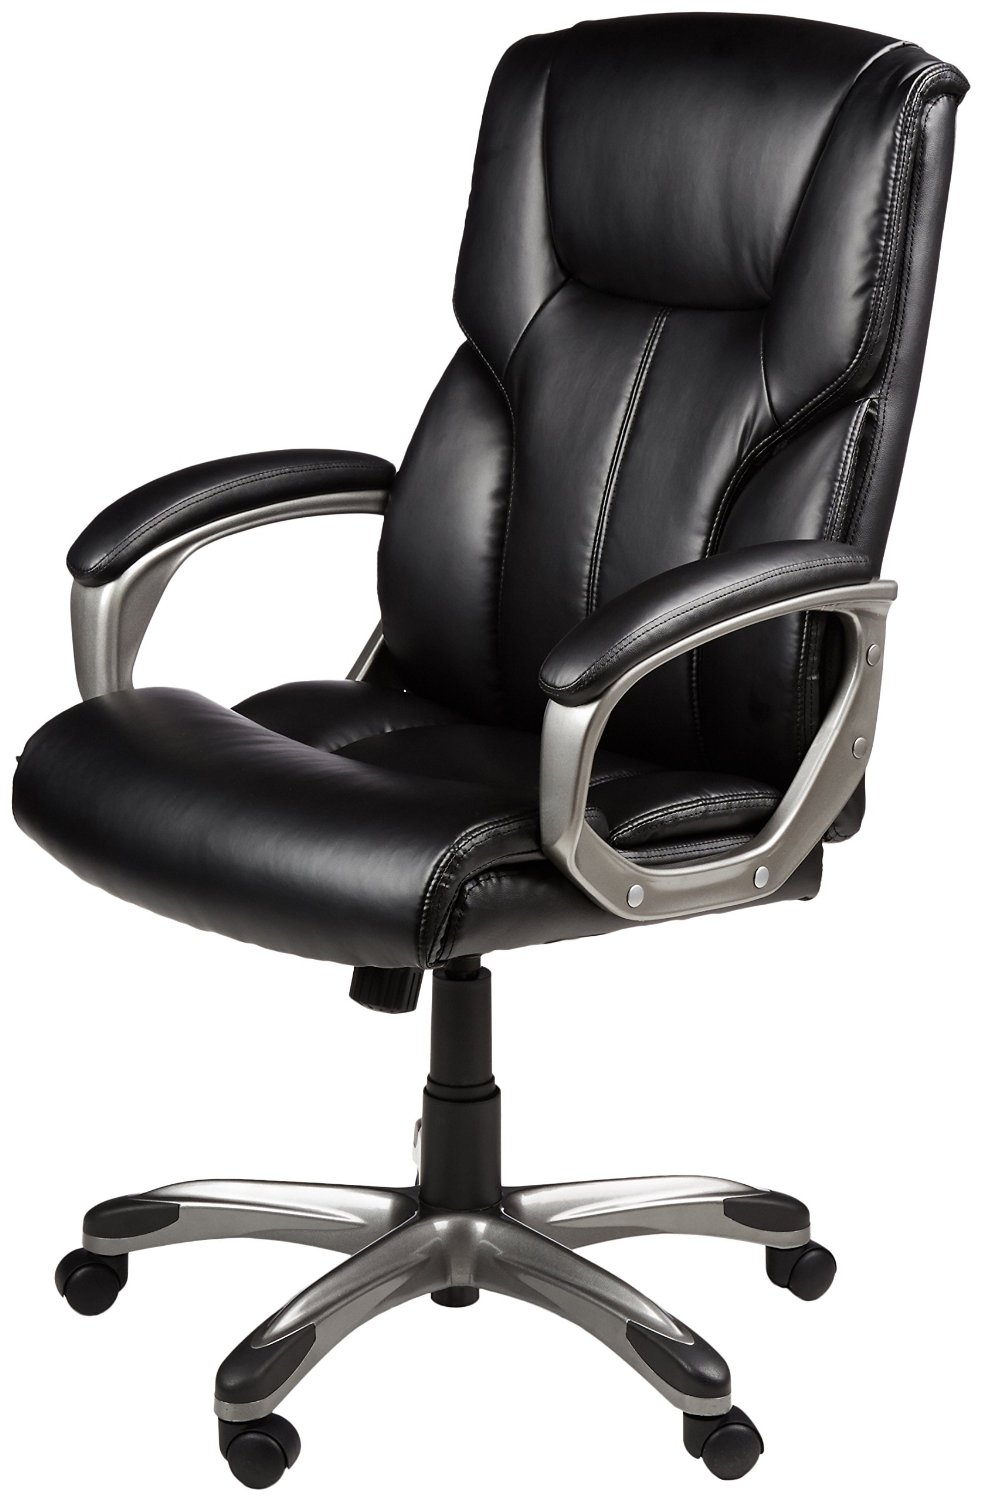 Executive Chair Buyers Guide